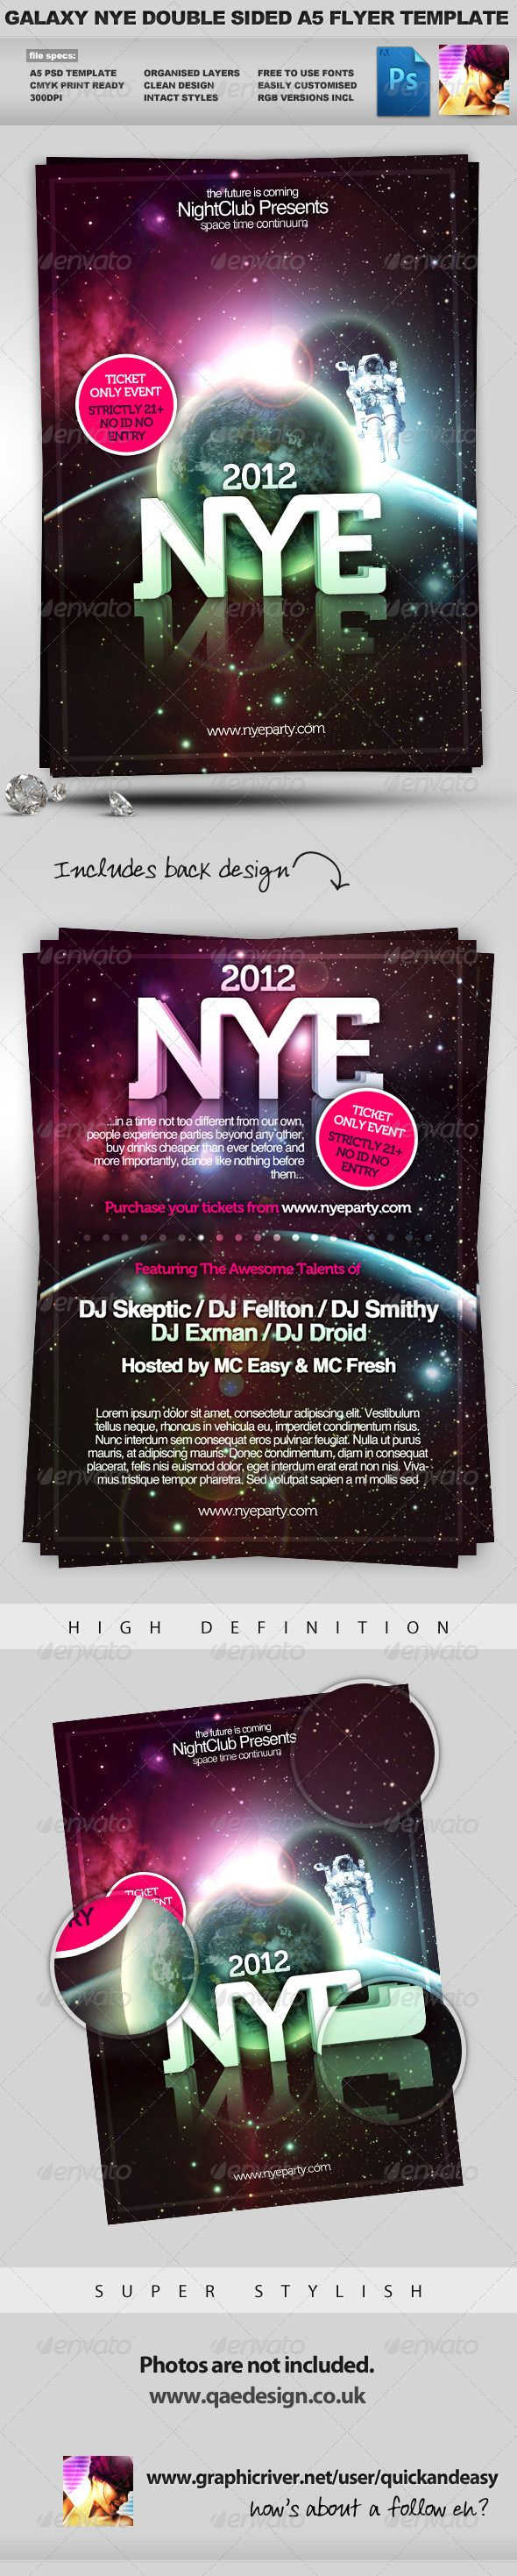 Galaxy Nye Double Sided A5 Psd Flyer Template Psd Flyer Templates Flyer Template Flyer